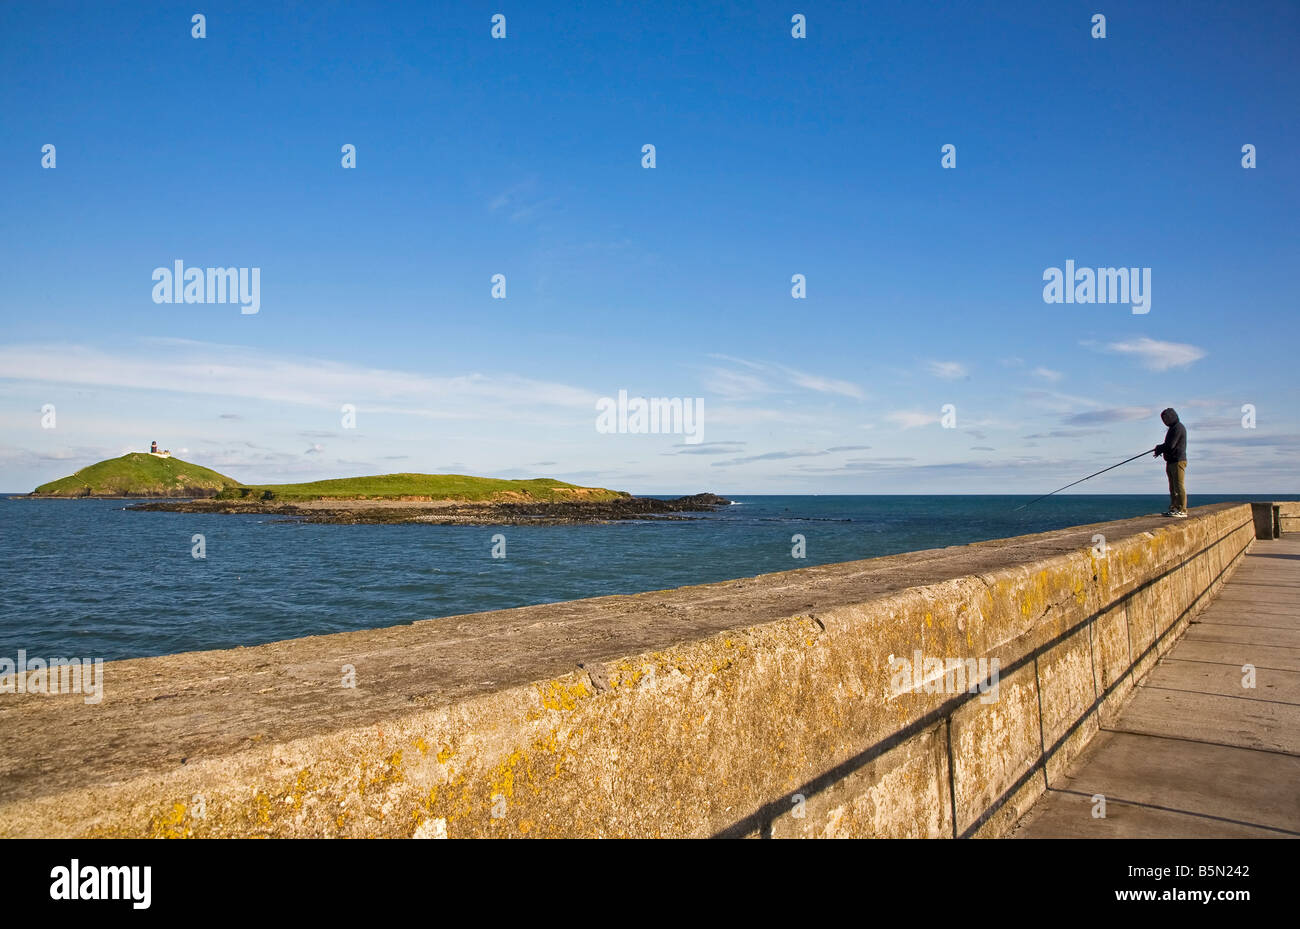 Sea Angling from Ballycotton Harbour Wall, County Cork, Ireland - Stock Image